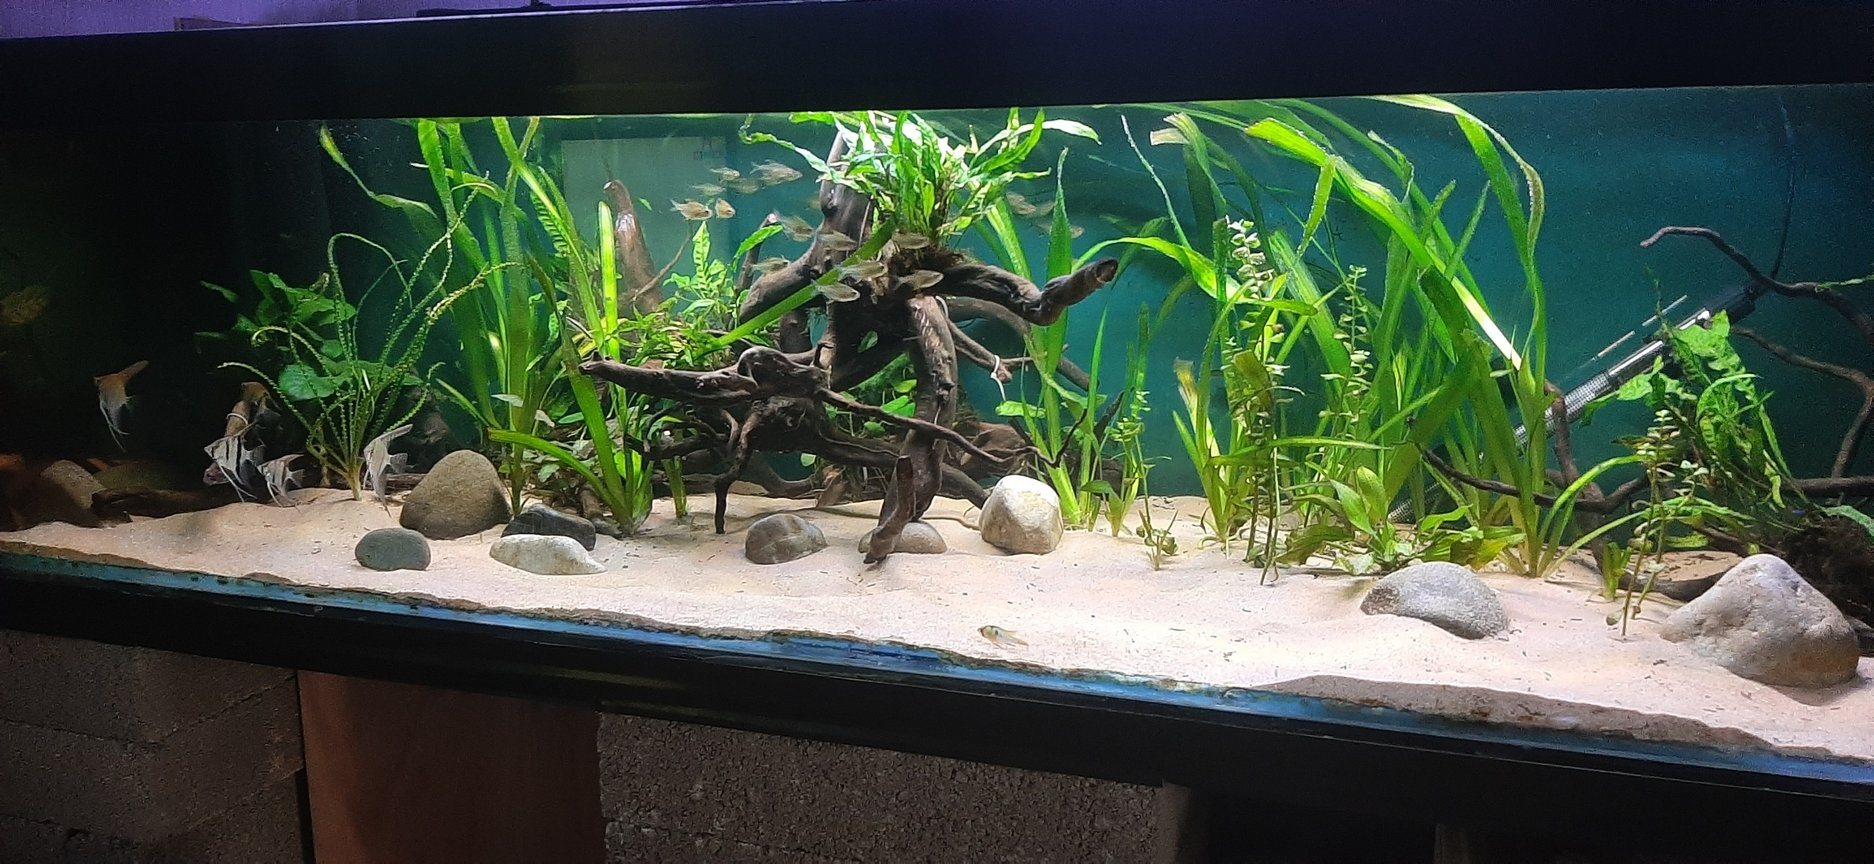 fish tank picture - Side angle